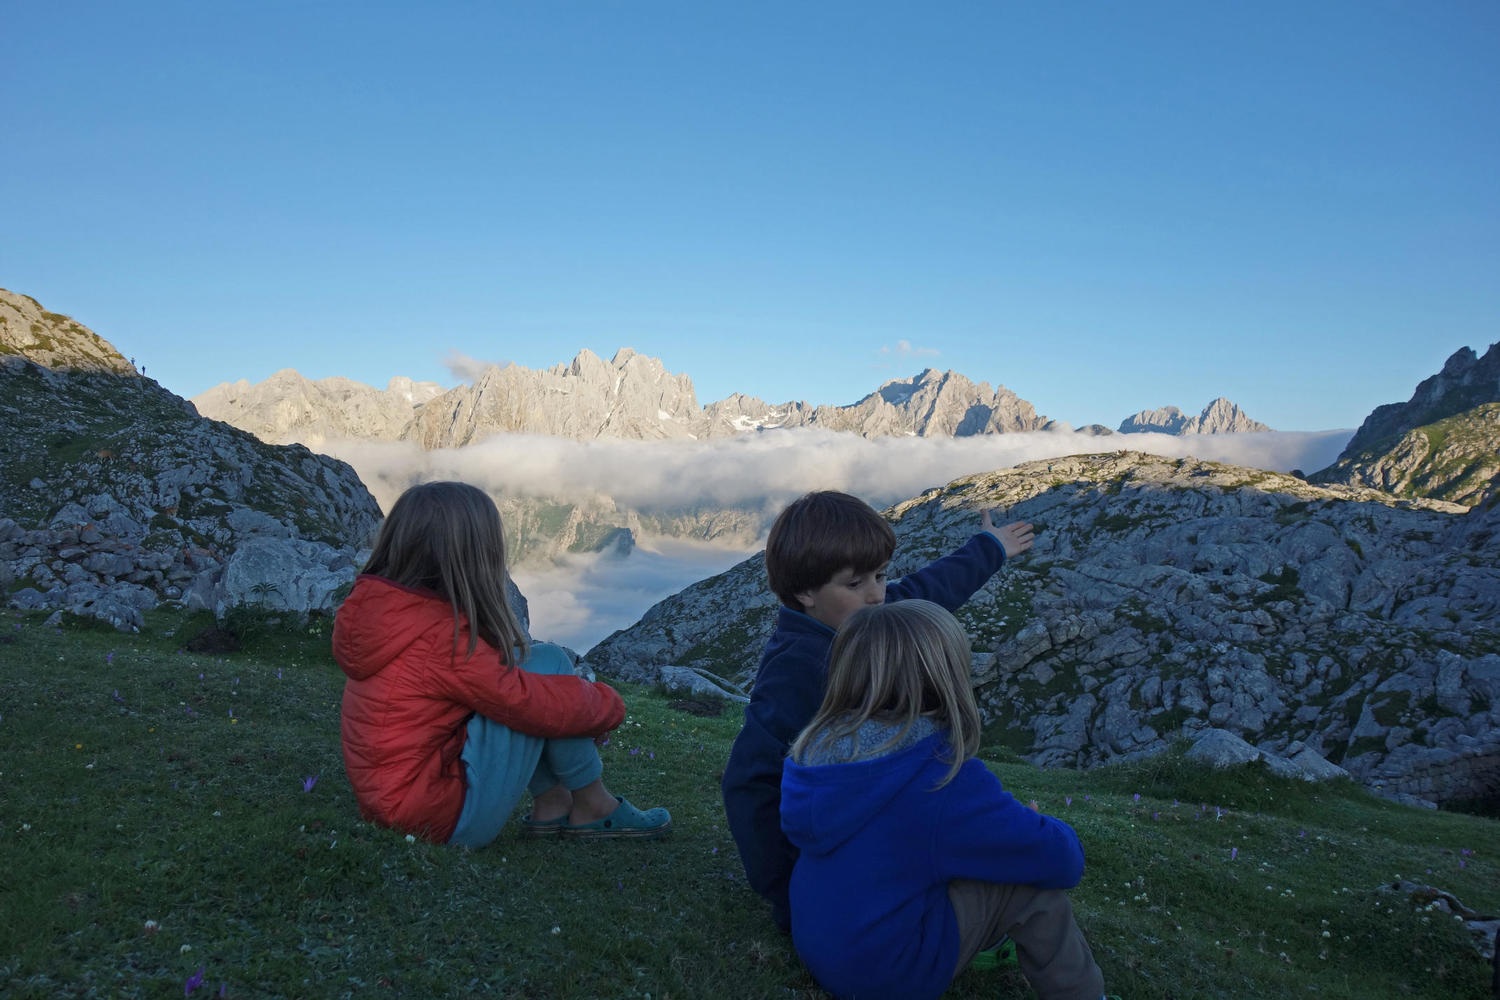 Kids at sunset in Vega de Ario, Picos de Europa